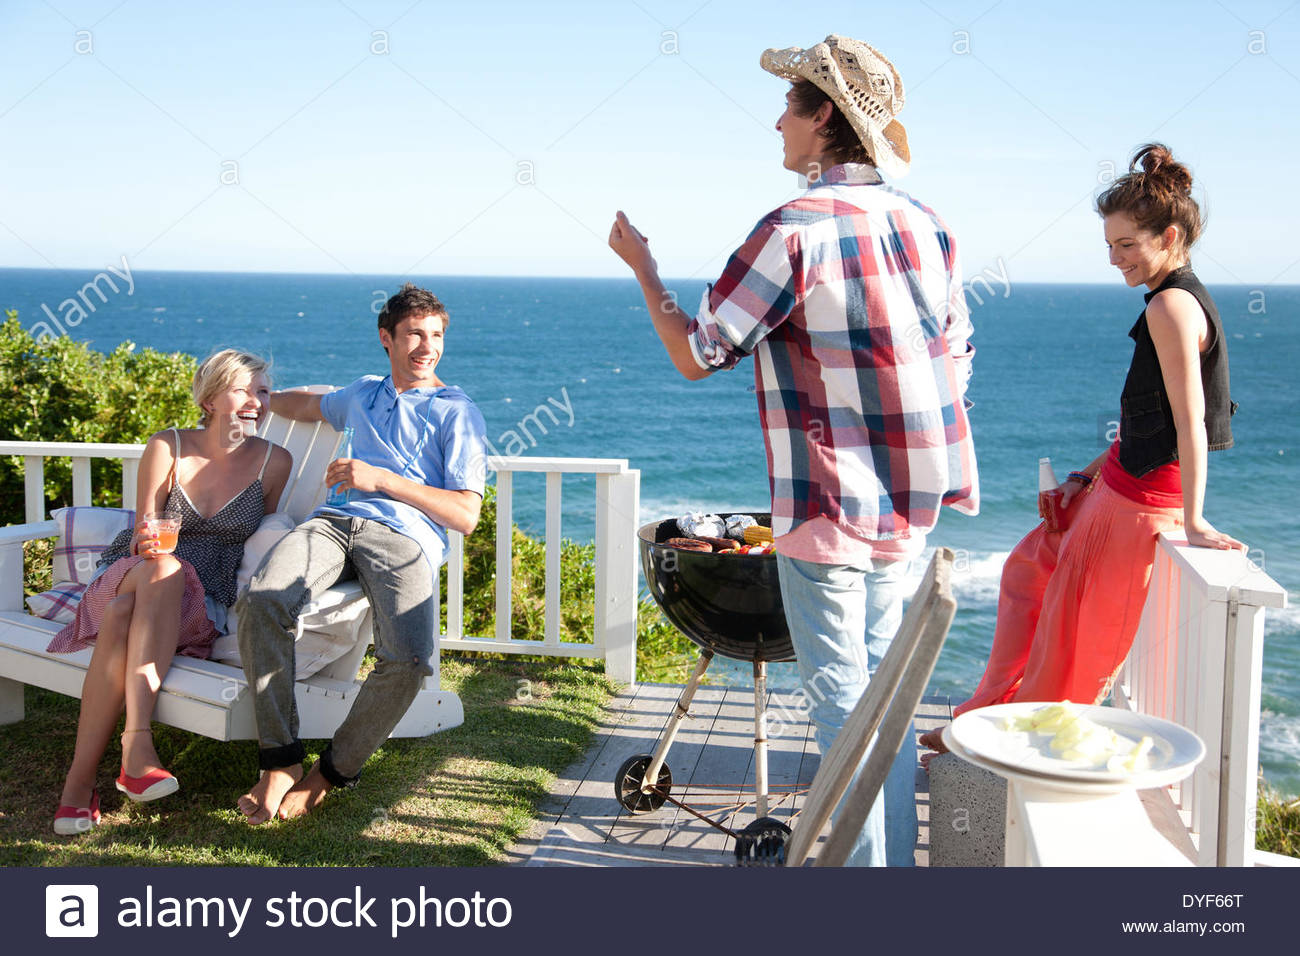 Friends enjoying barbecue - Stock Image